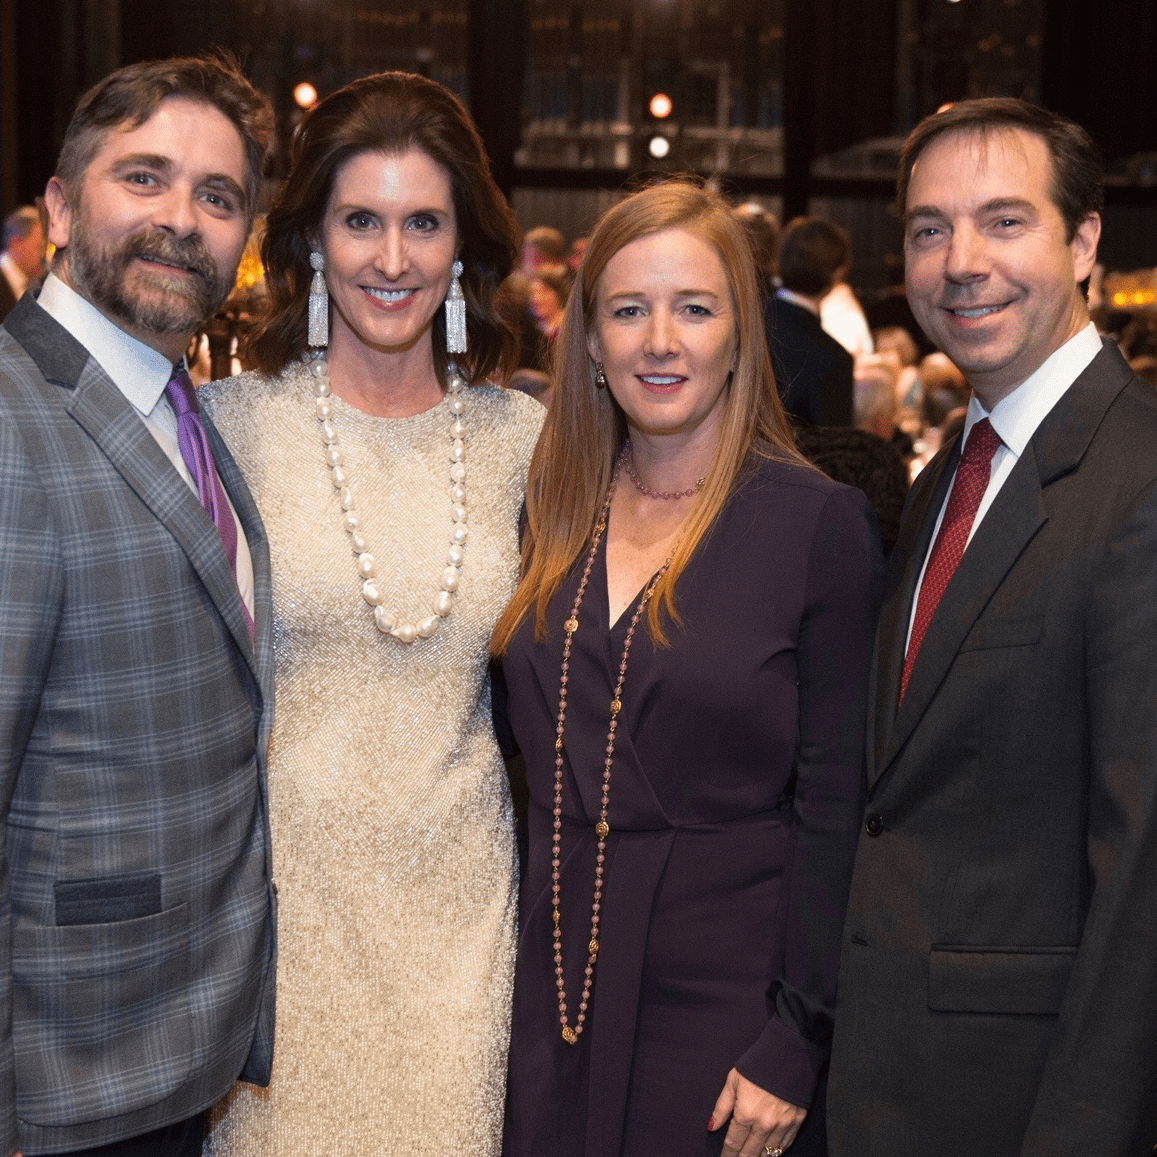 Houston Ballet Opening Night Dinner, Stanton Welch, Phoebe Tudor, Allison Thacker, Jim Nelson